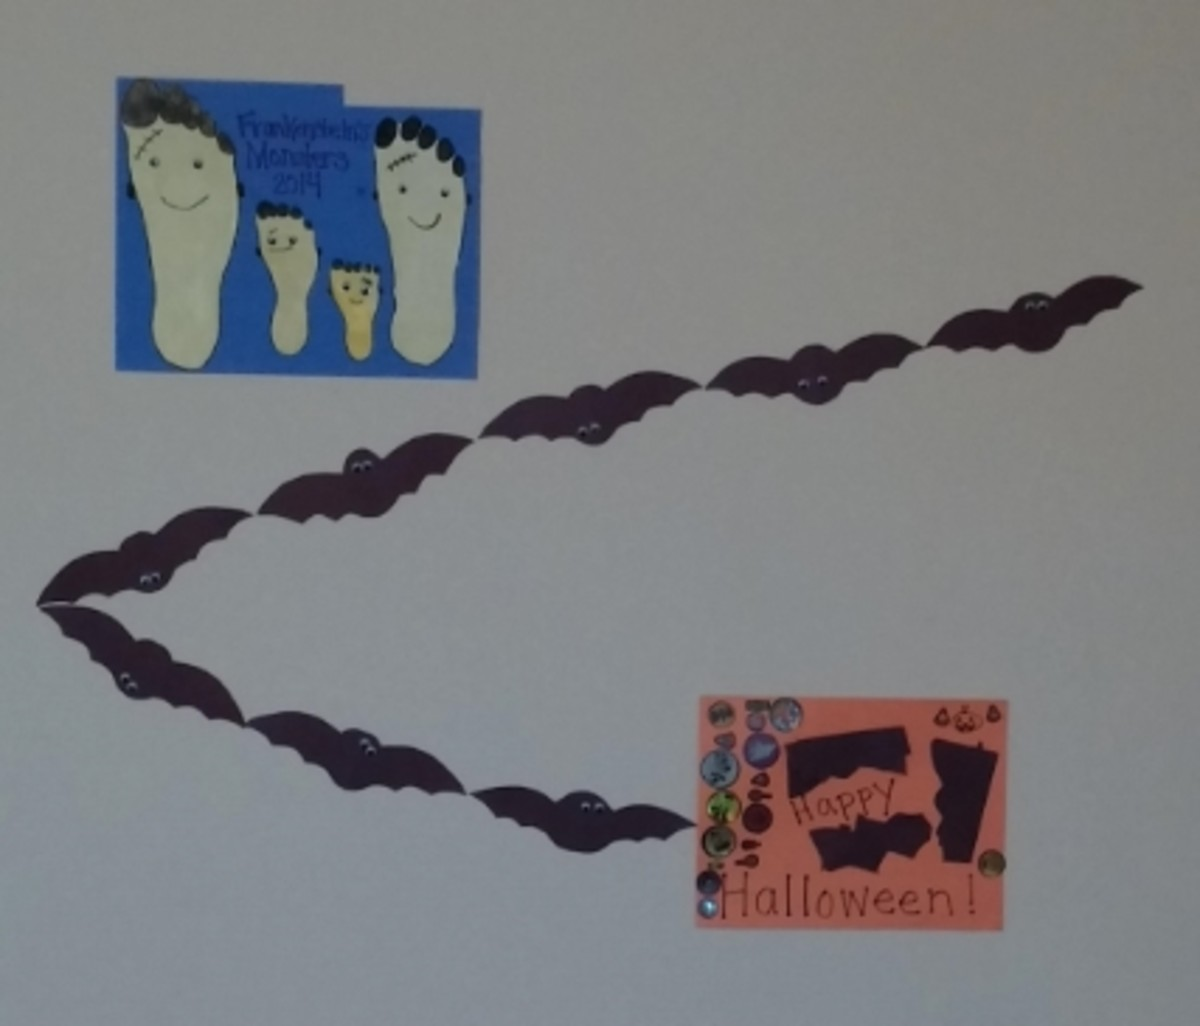 Fun Halloween Decorations on our Walls